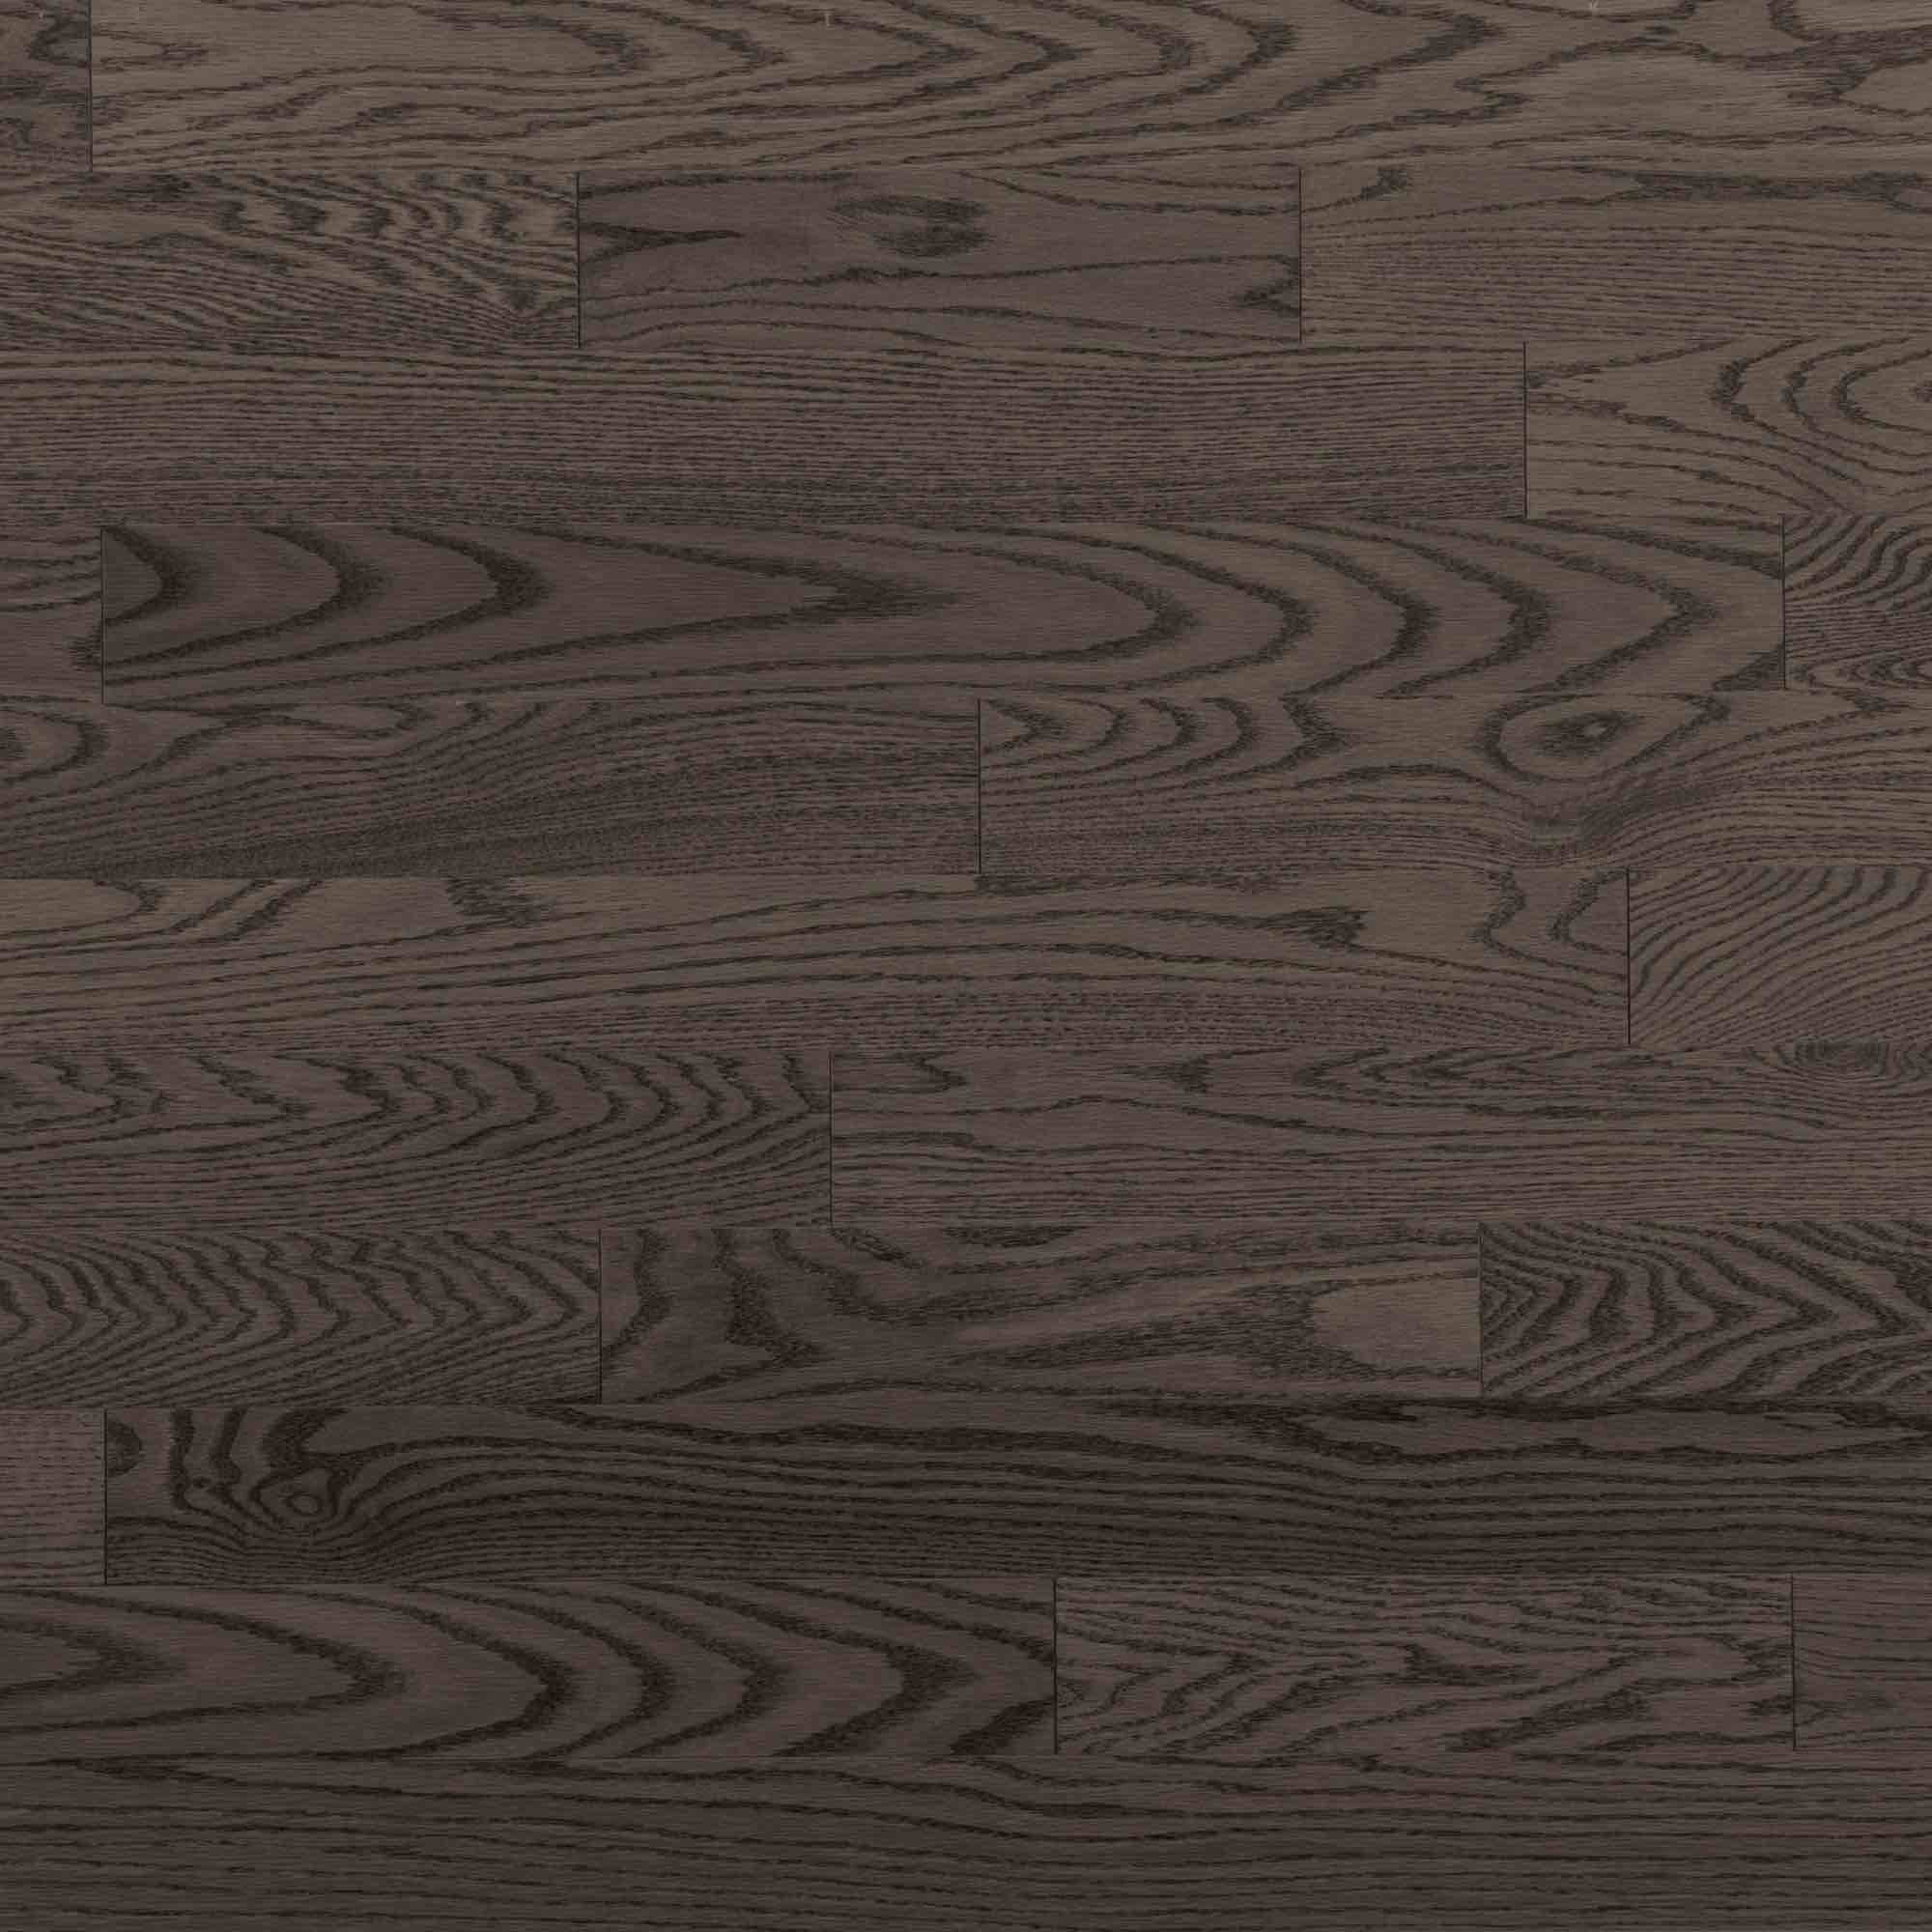 wide plank laminate hardwood flooring of hardwood westfloors west vancouver hardwood flooring carpet with featured hardwoods red oak charcoal